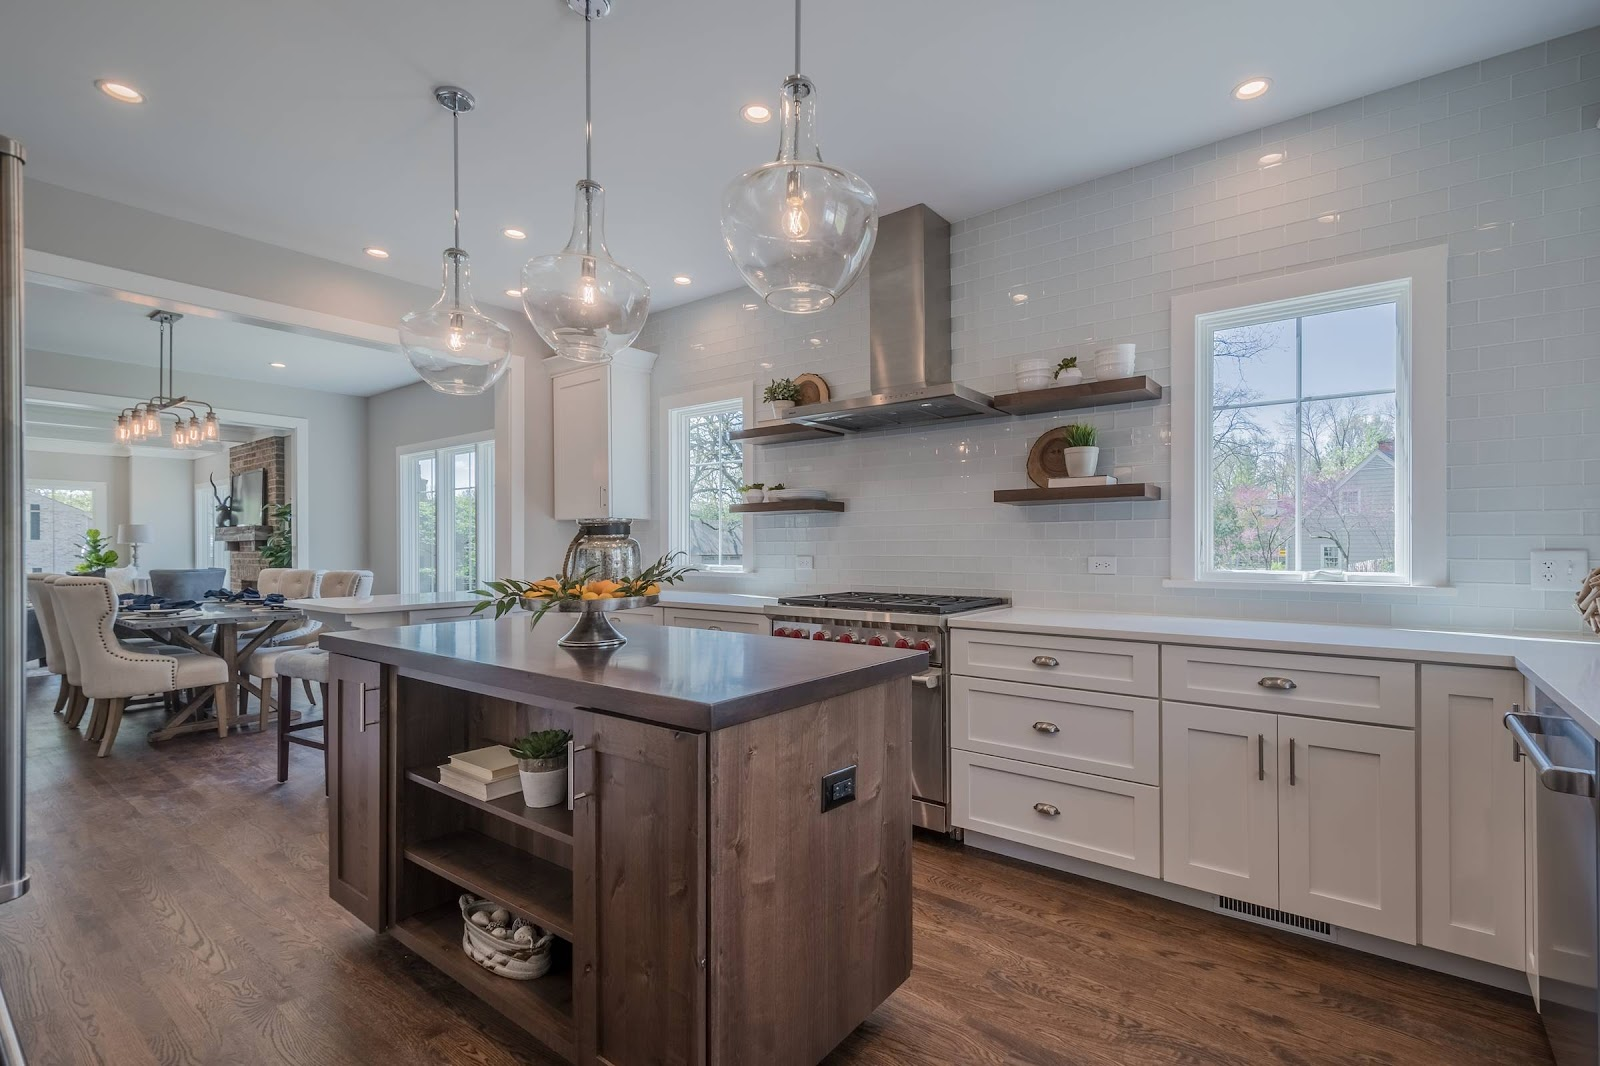 Natural wood island contrasts and all white kitchen. Multiple windows and glass pendants provide ample, inviting light to the open floor plan leading to the dining and living room spaces.